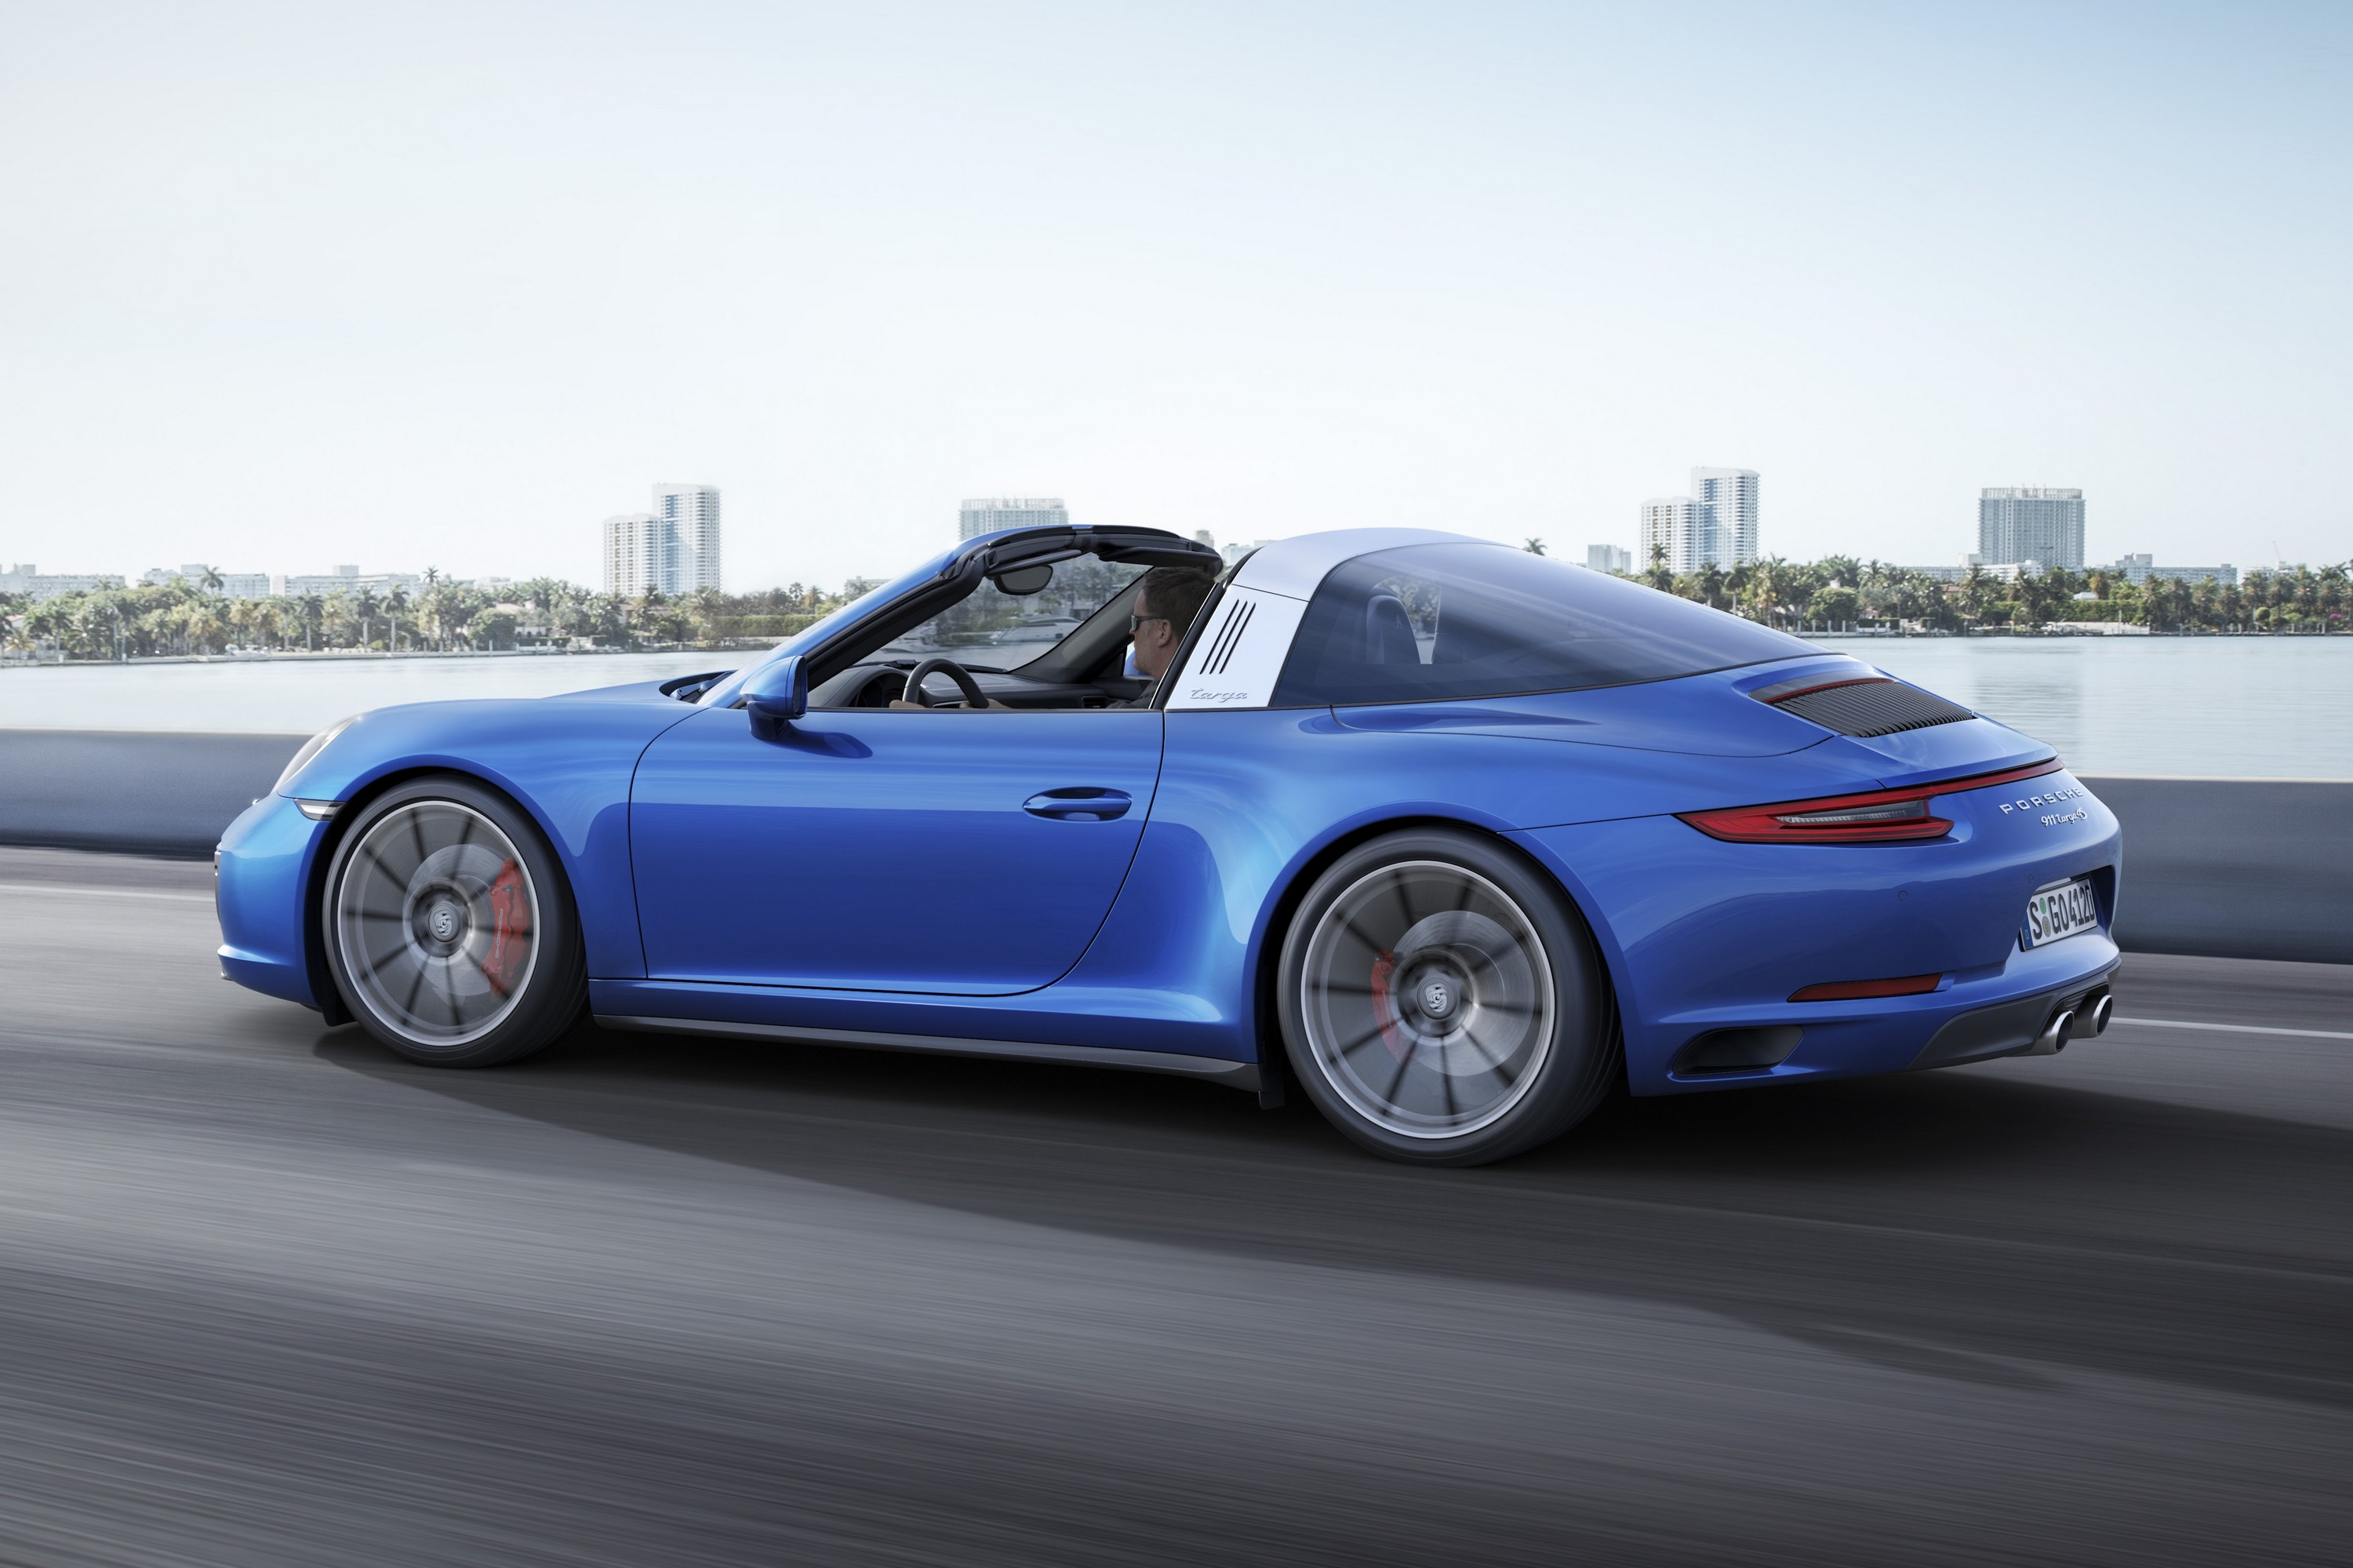 porsche prices 911 carrera 4 models with new turbo engine. Black Bedroom Furniture Sets. Home Design Ideas